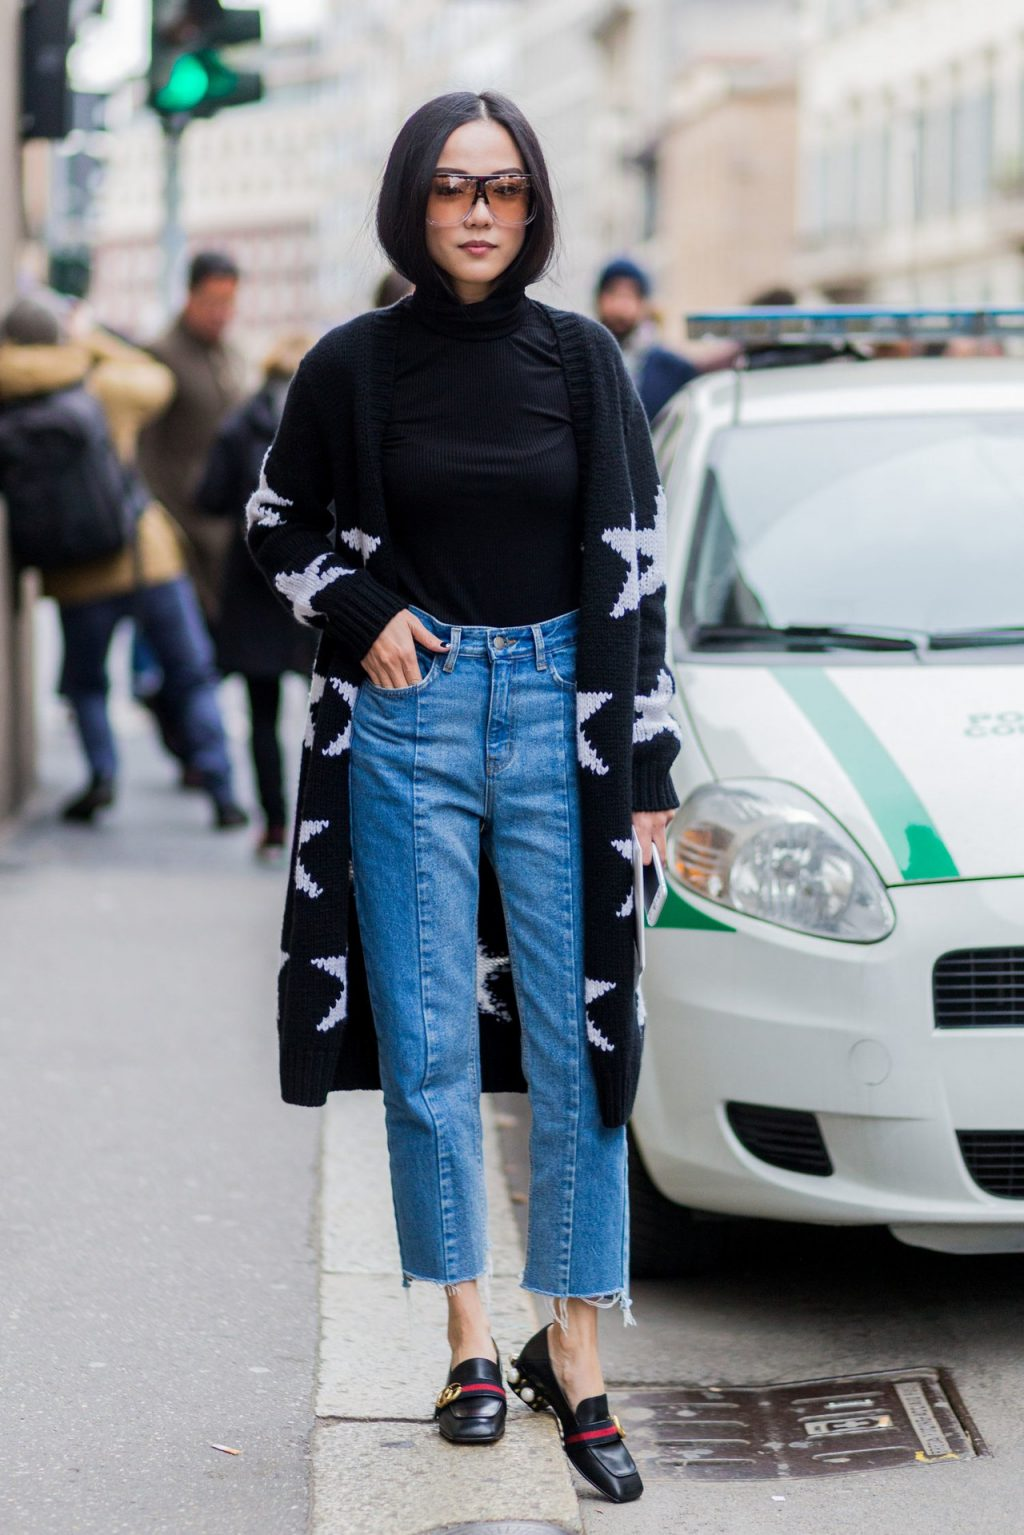 If you are petite, cropped jeans (jeans with a shorter hem), baggy jeans and boyfriend pants are the design for you